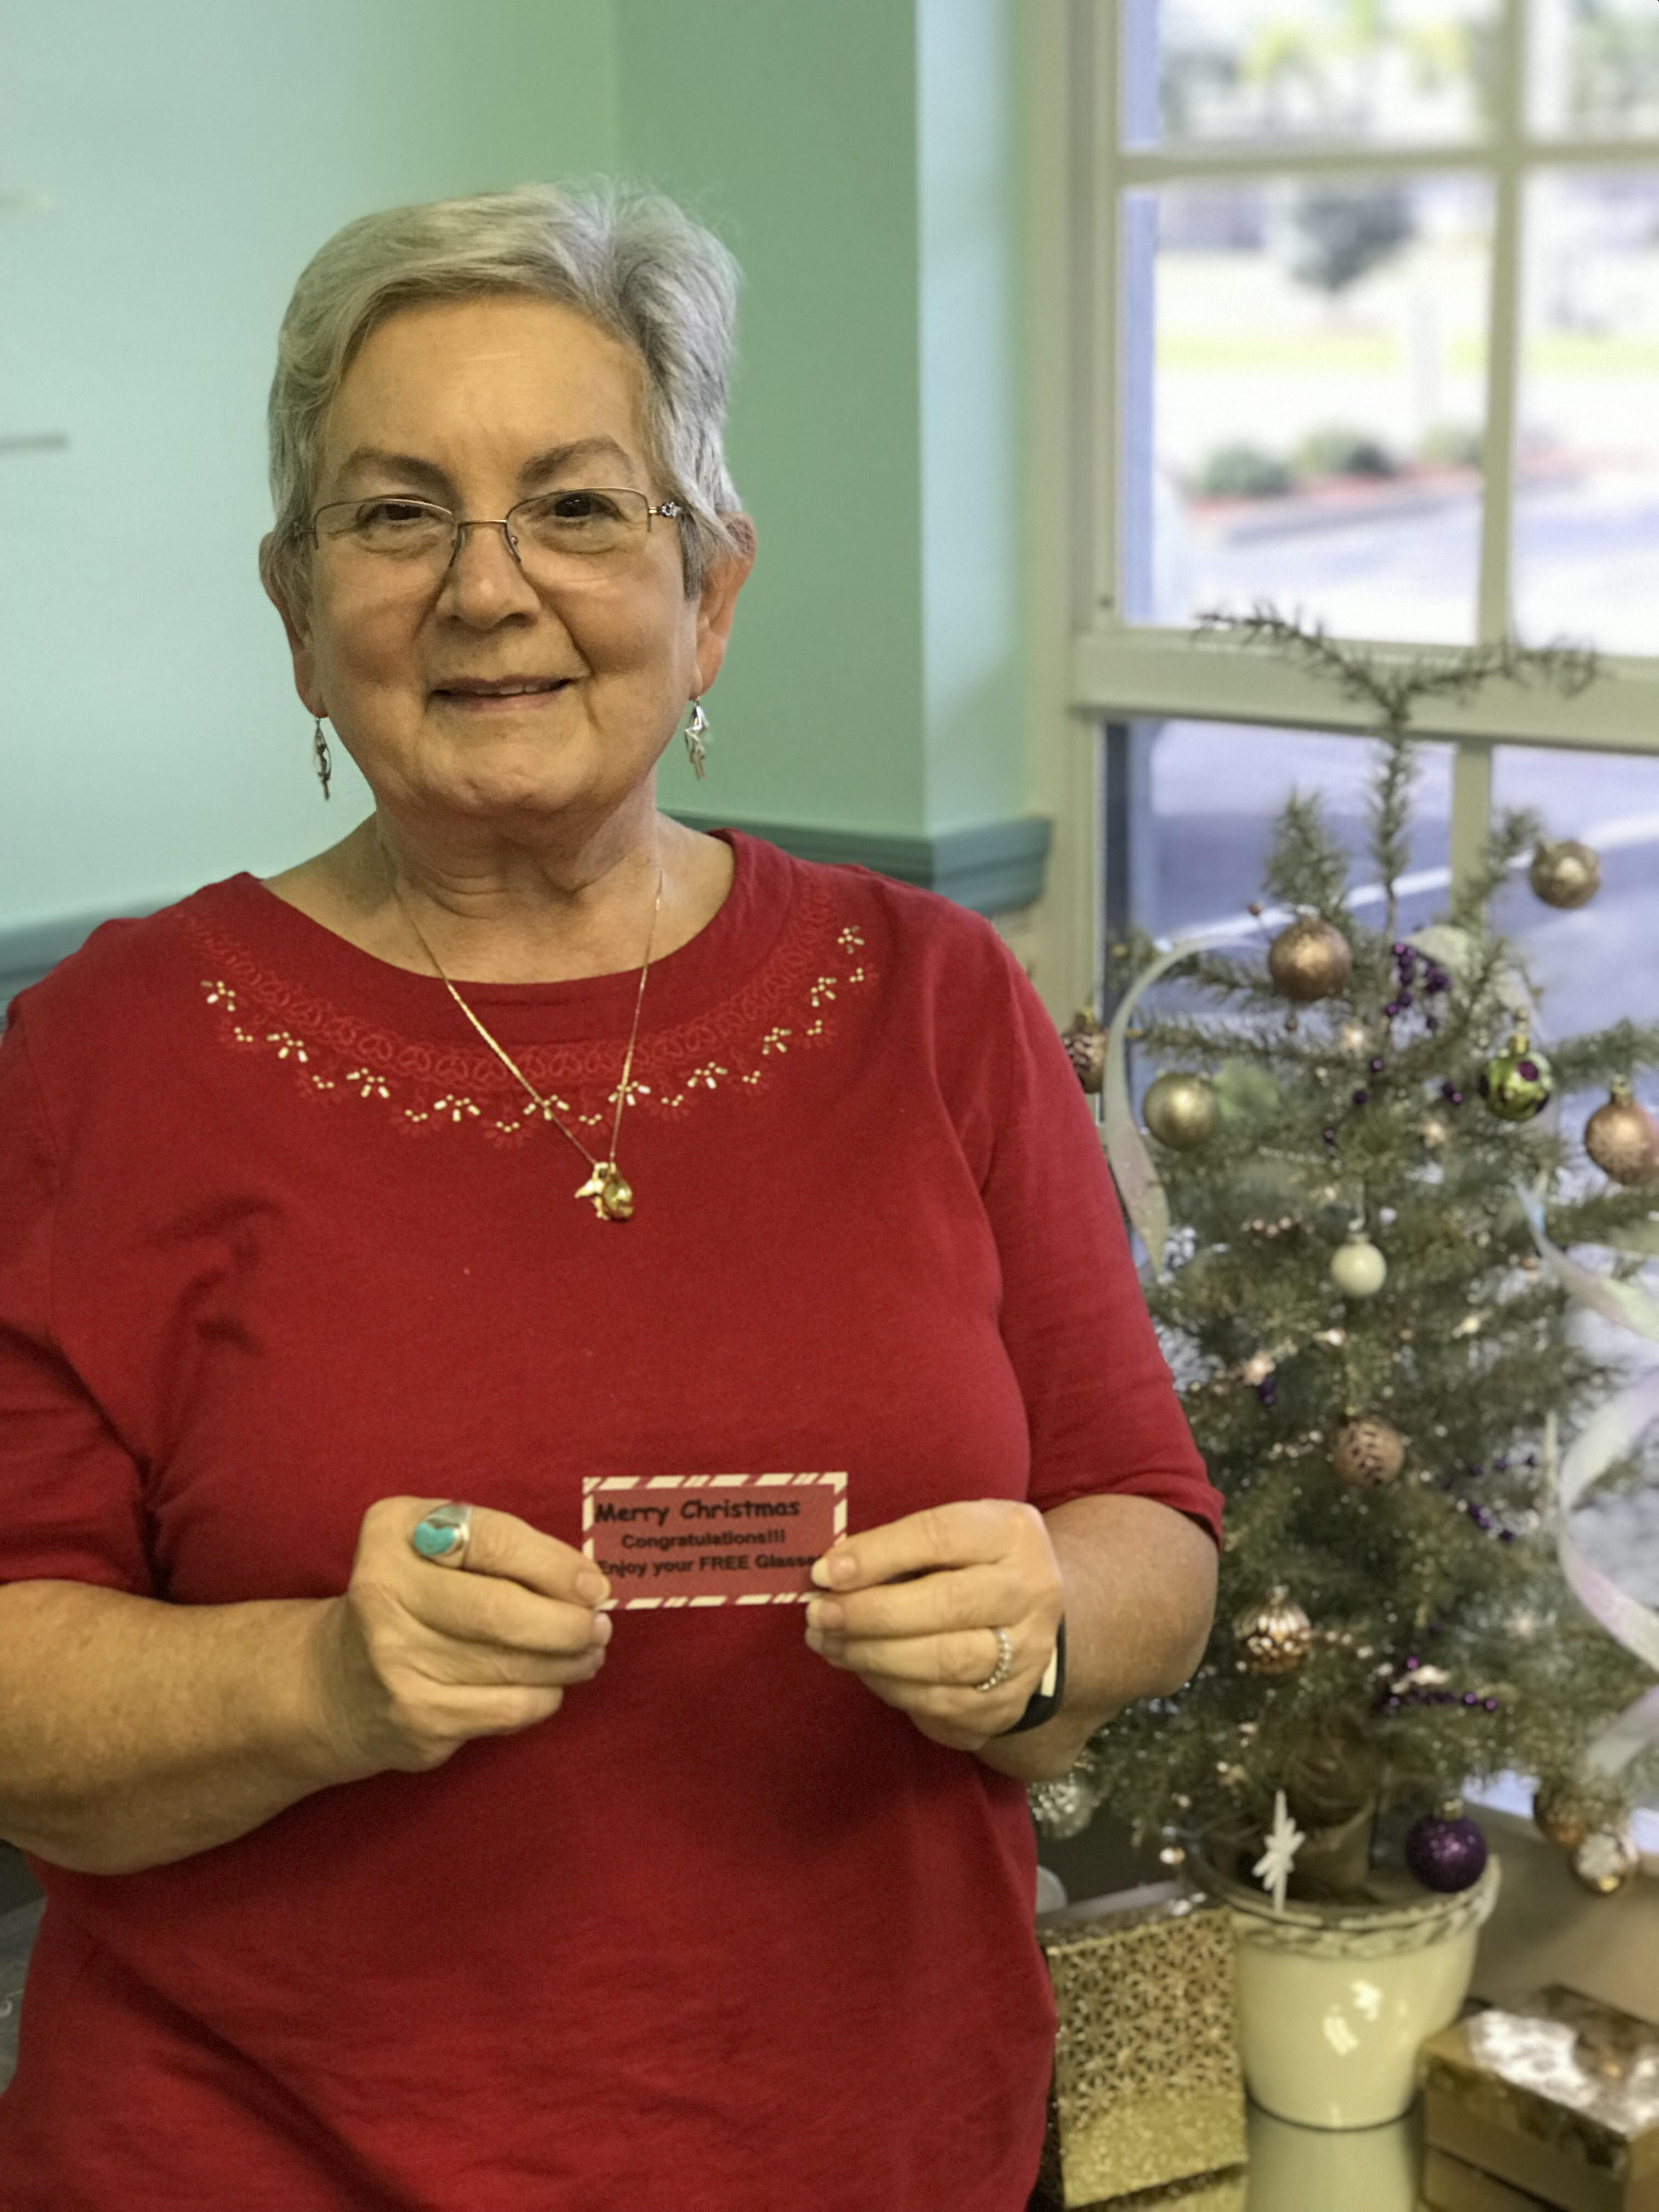 Mrs. A won FREE glasses during the 2018 Bucci Eye Care Christmas Promotion